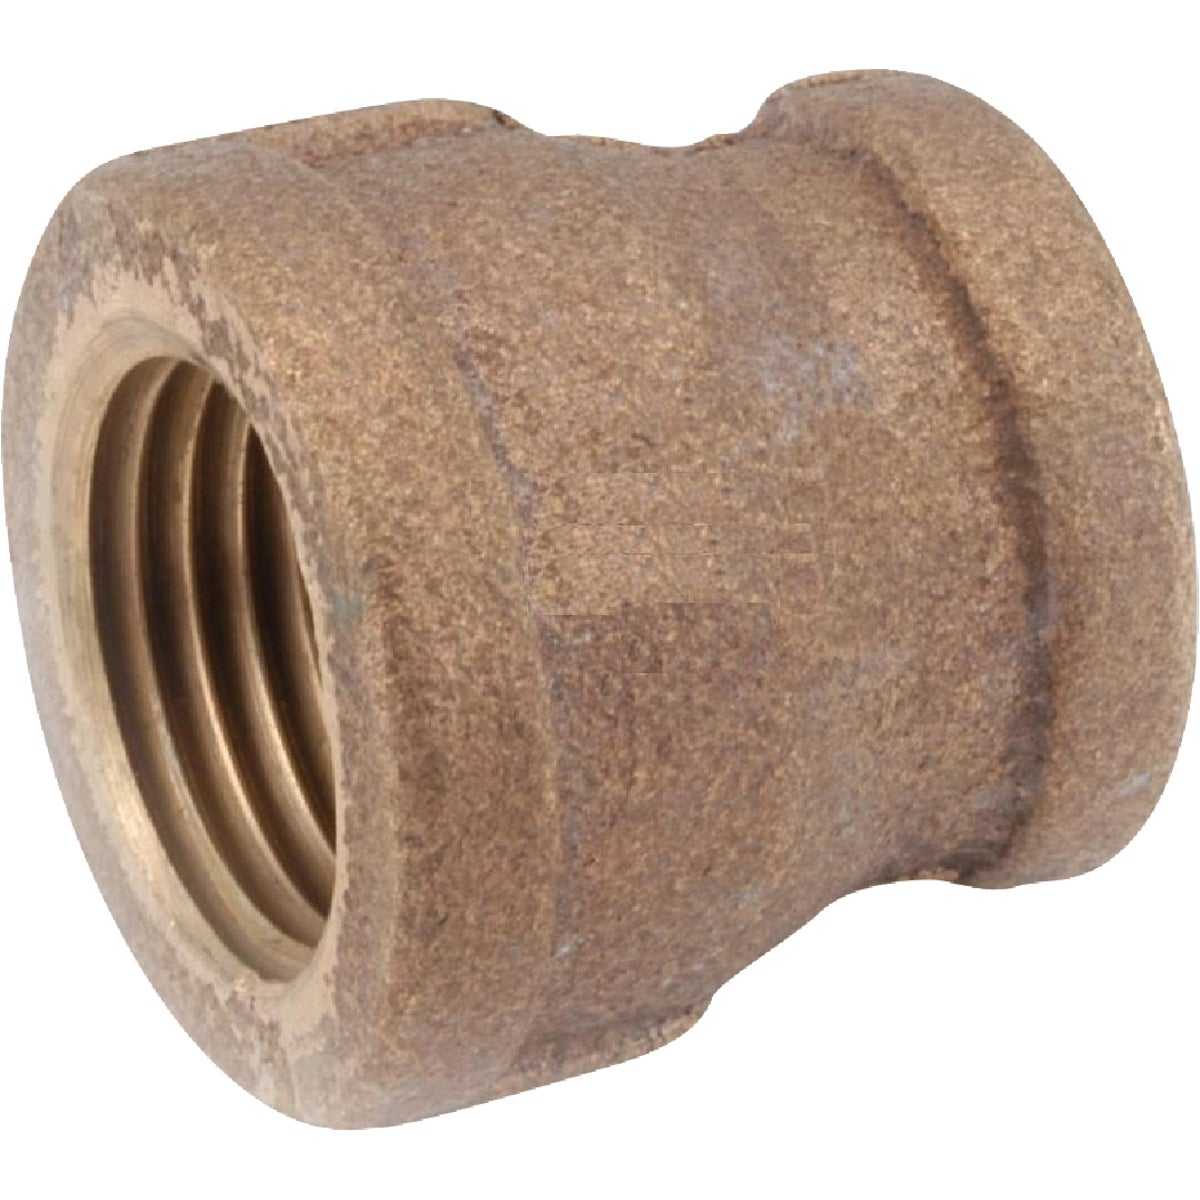 3/4X1/2 BRASS COUPLING - 738119-1208 by Anderson Metals Corp